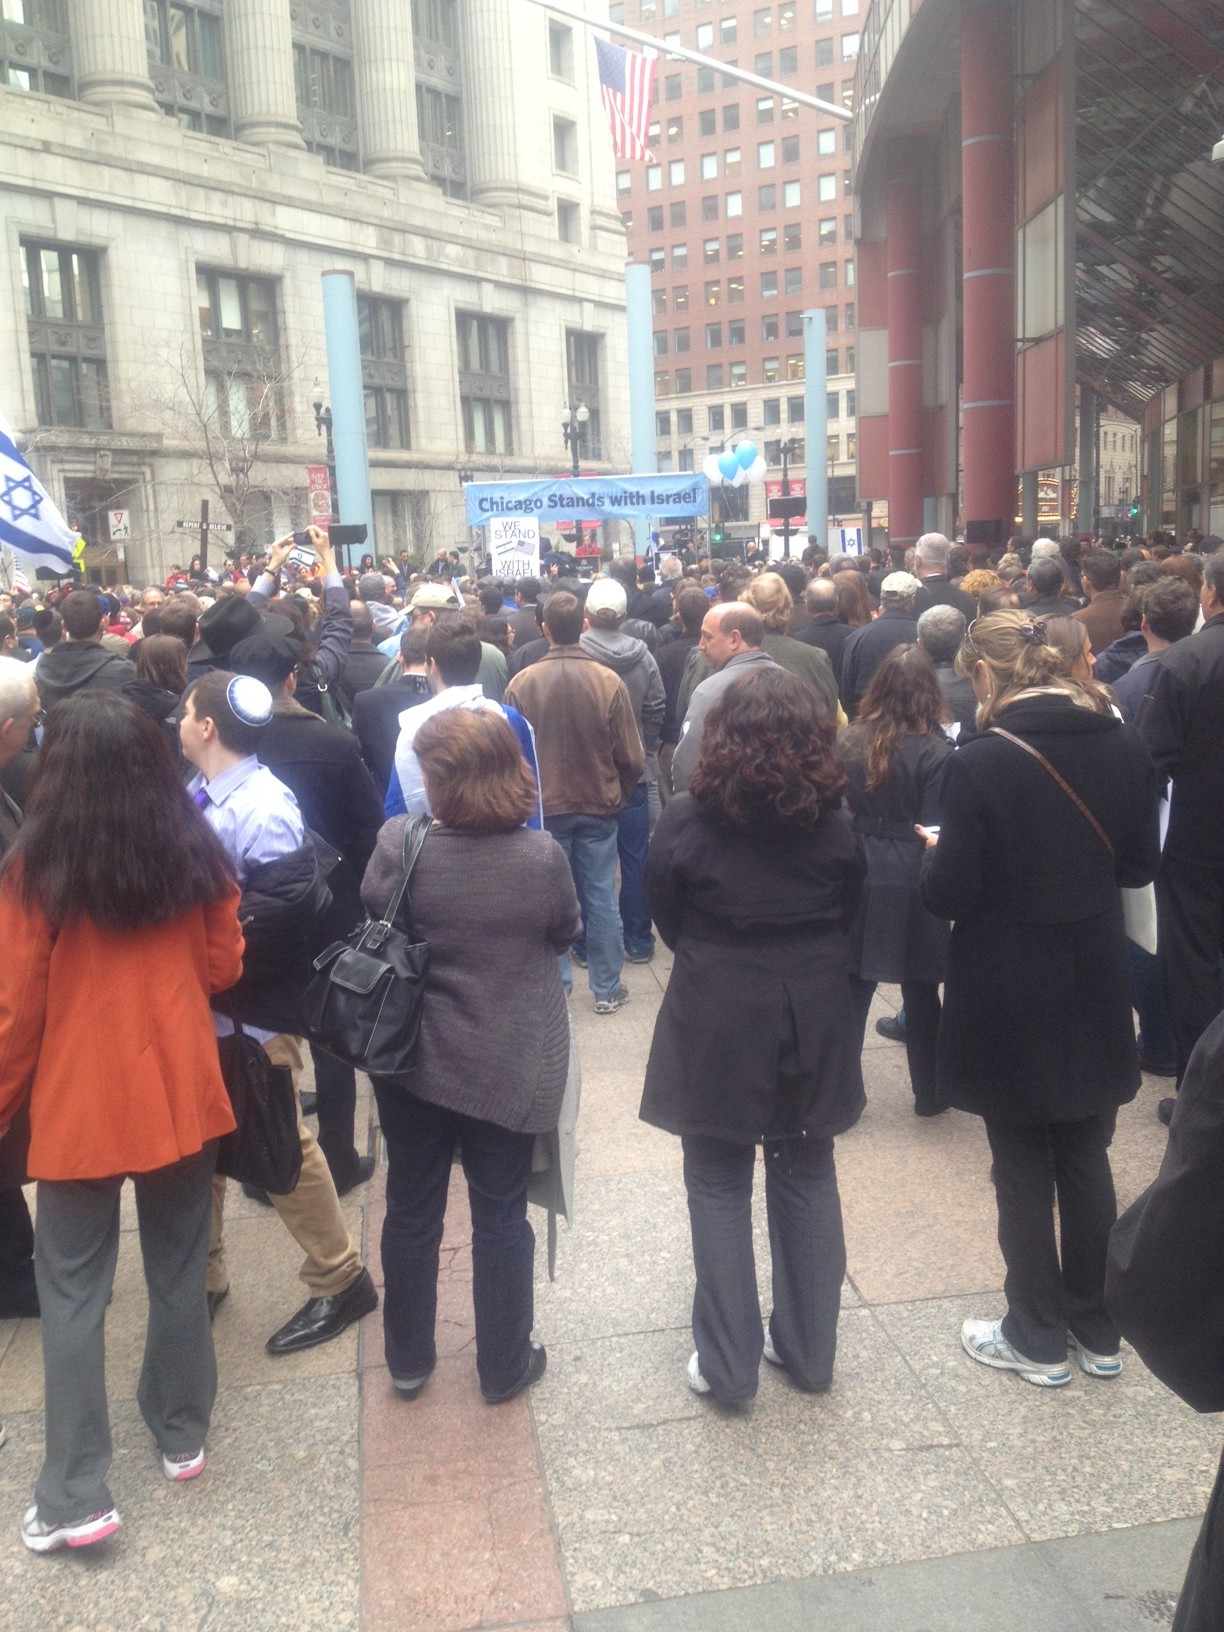 Chicago Stands with Israel 11:20:2012